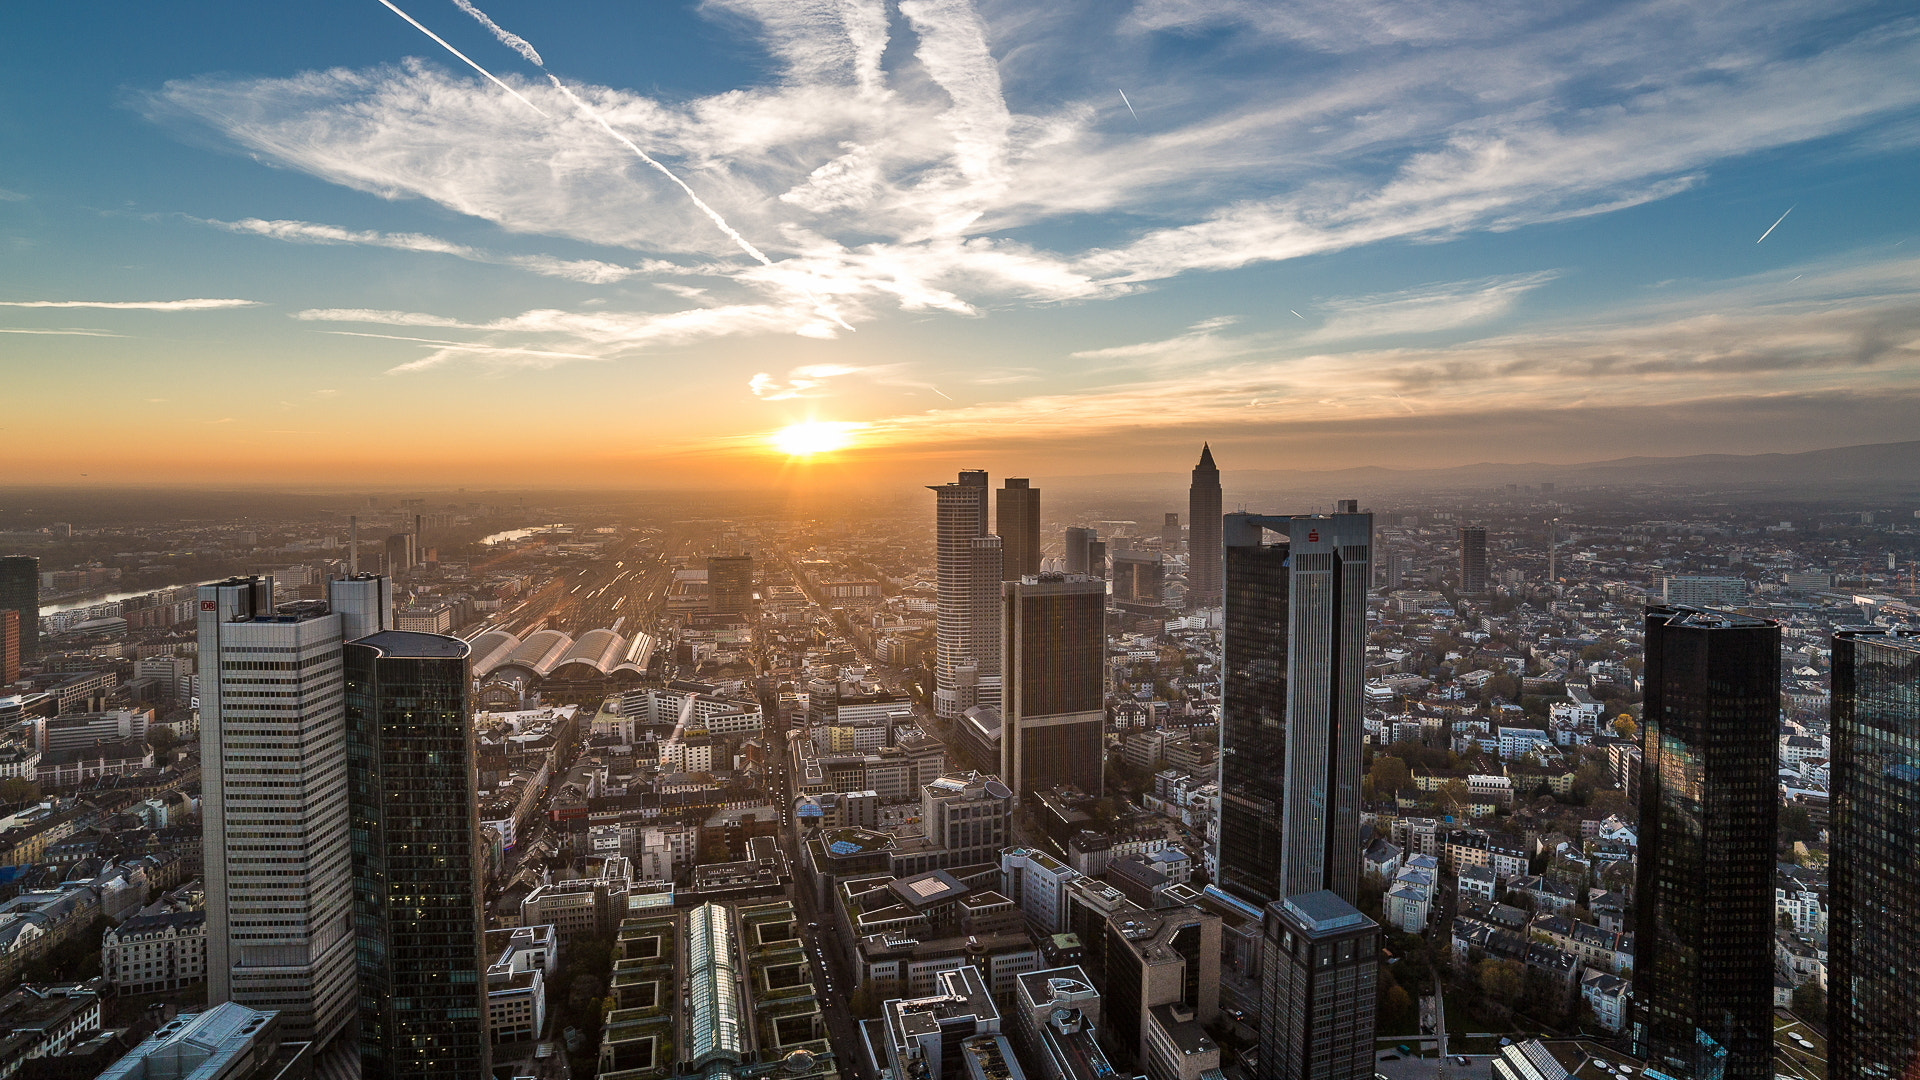 Photograph Sunset in Frankfurt by DF Photography on 500px